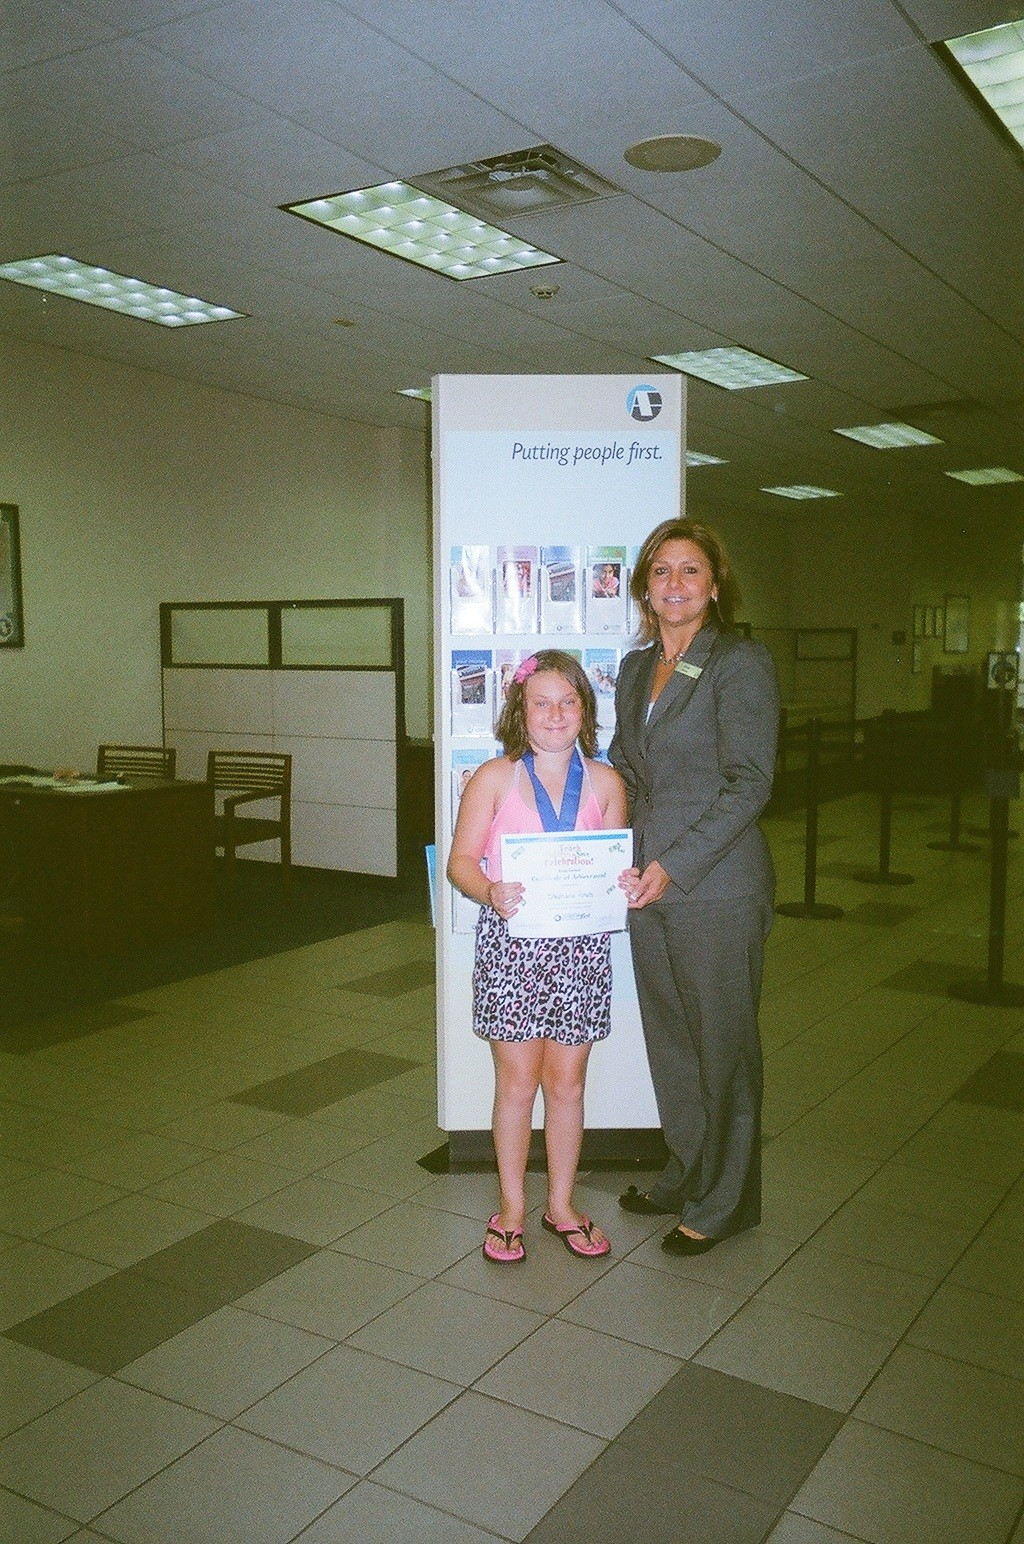 Stephanie Amato, 9, of Franklin Square, was all smiles when she was presented with an award for her winning essay by Astoria Federal Savings Bank's Franklin Square Branch Manager Elaine Russo.